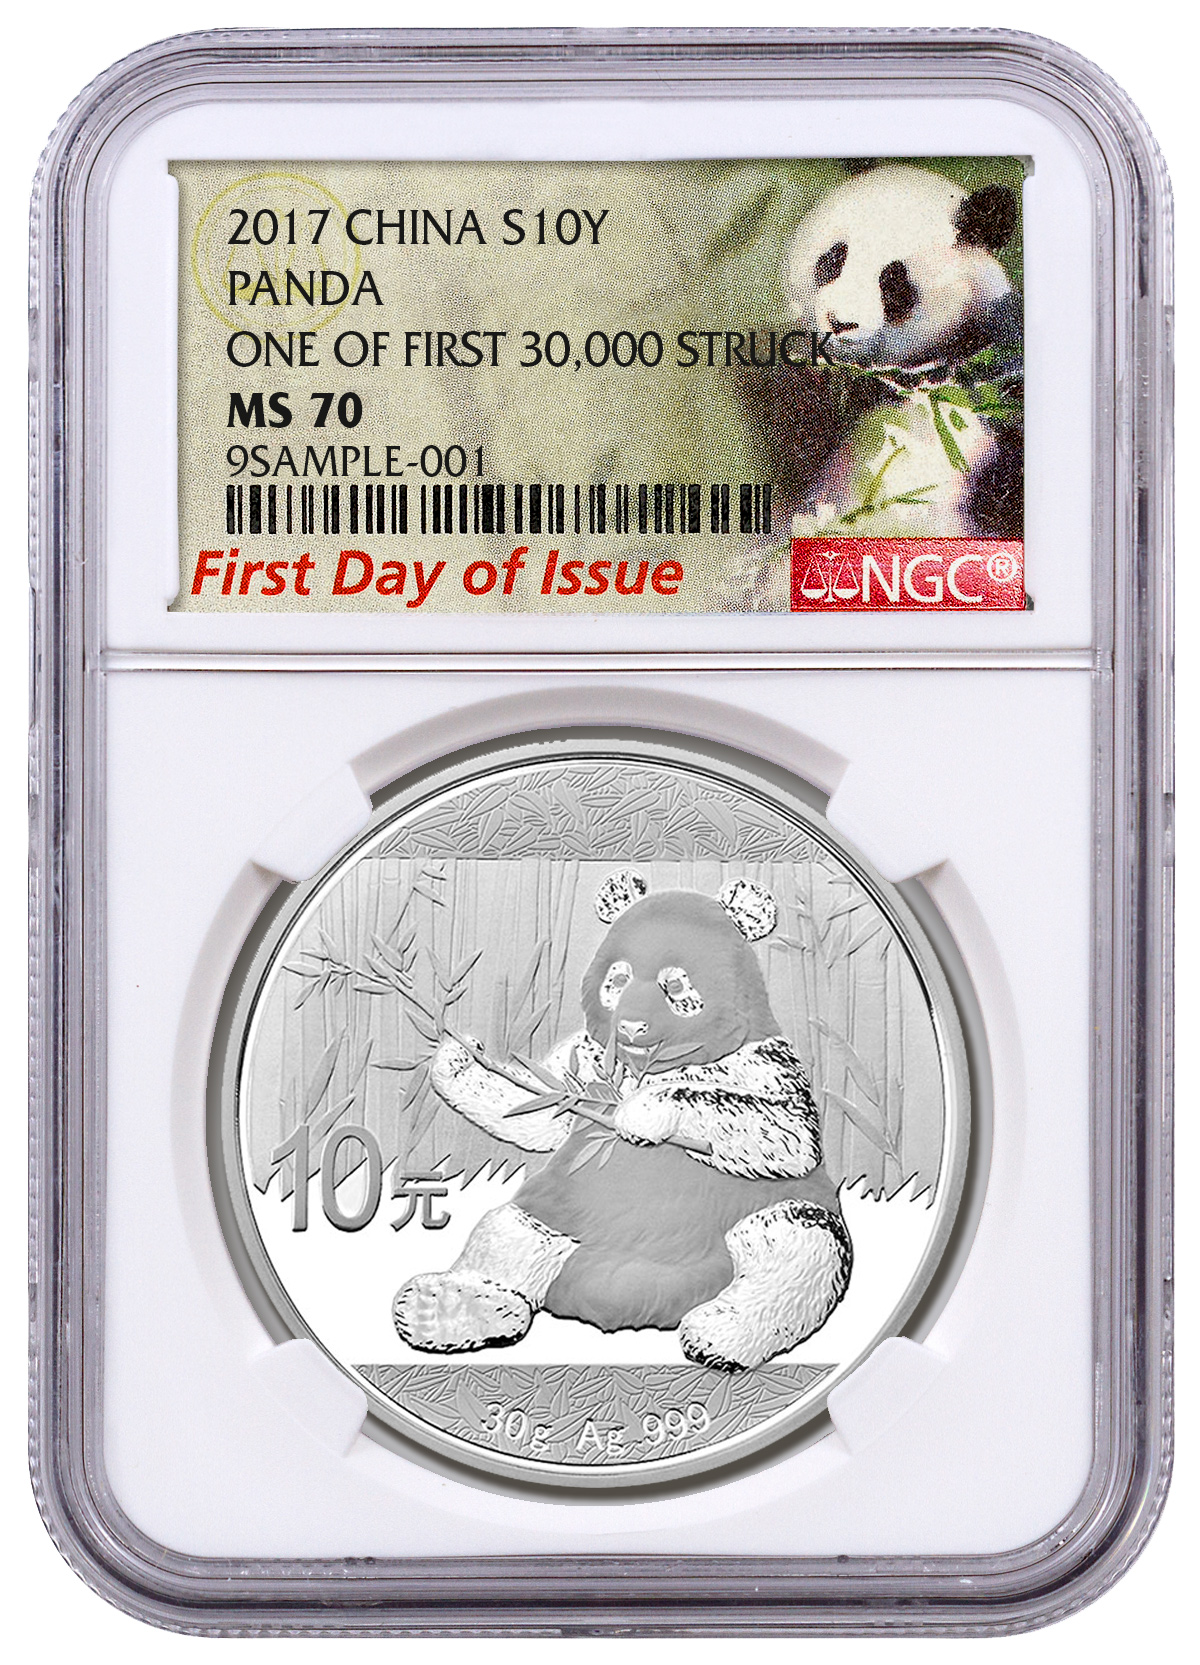 2017 China 30 g Silver Panda ¥10 Coin One of First 30,000 Struck NGC MS70 FDI (Exclusive Panda Label)